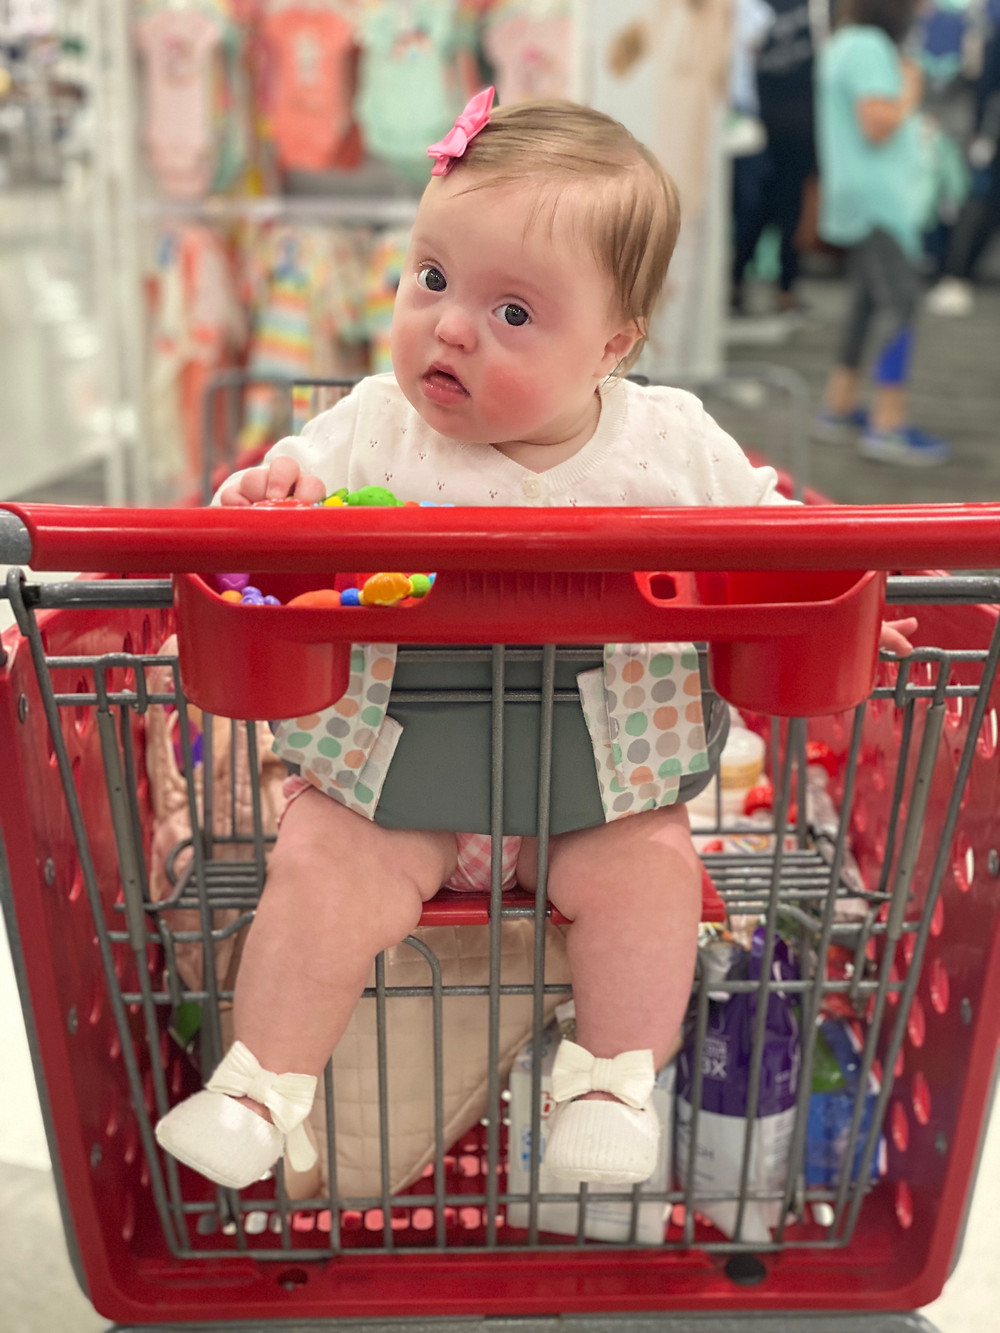 Adeline sitting in a shopping cart with the help of The Swing Thing